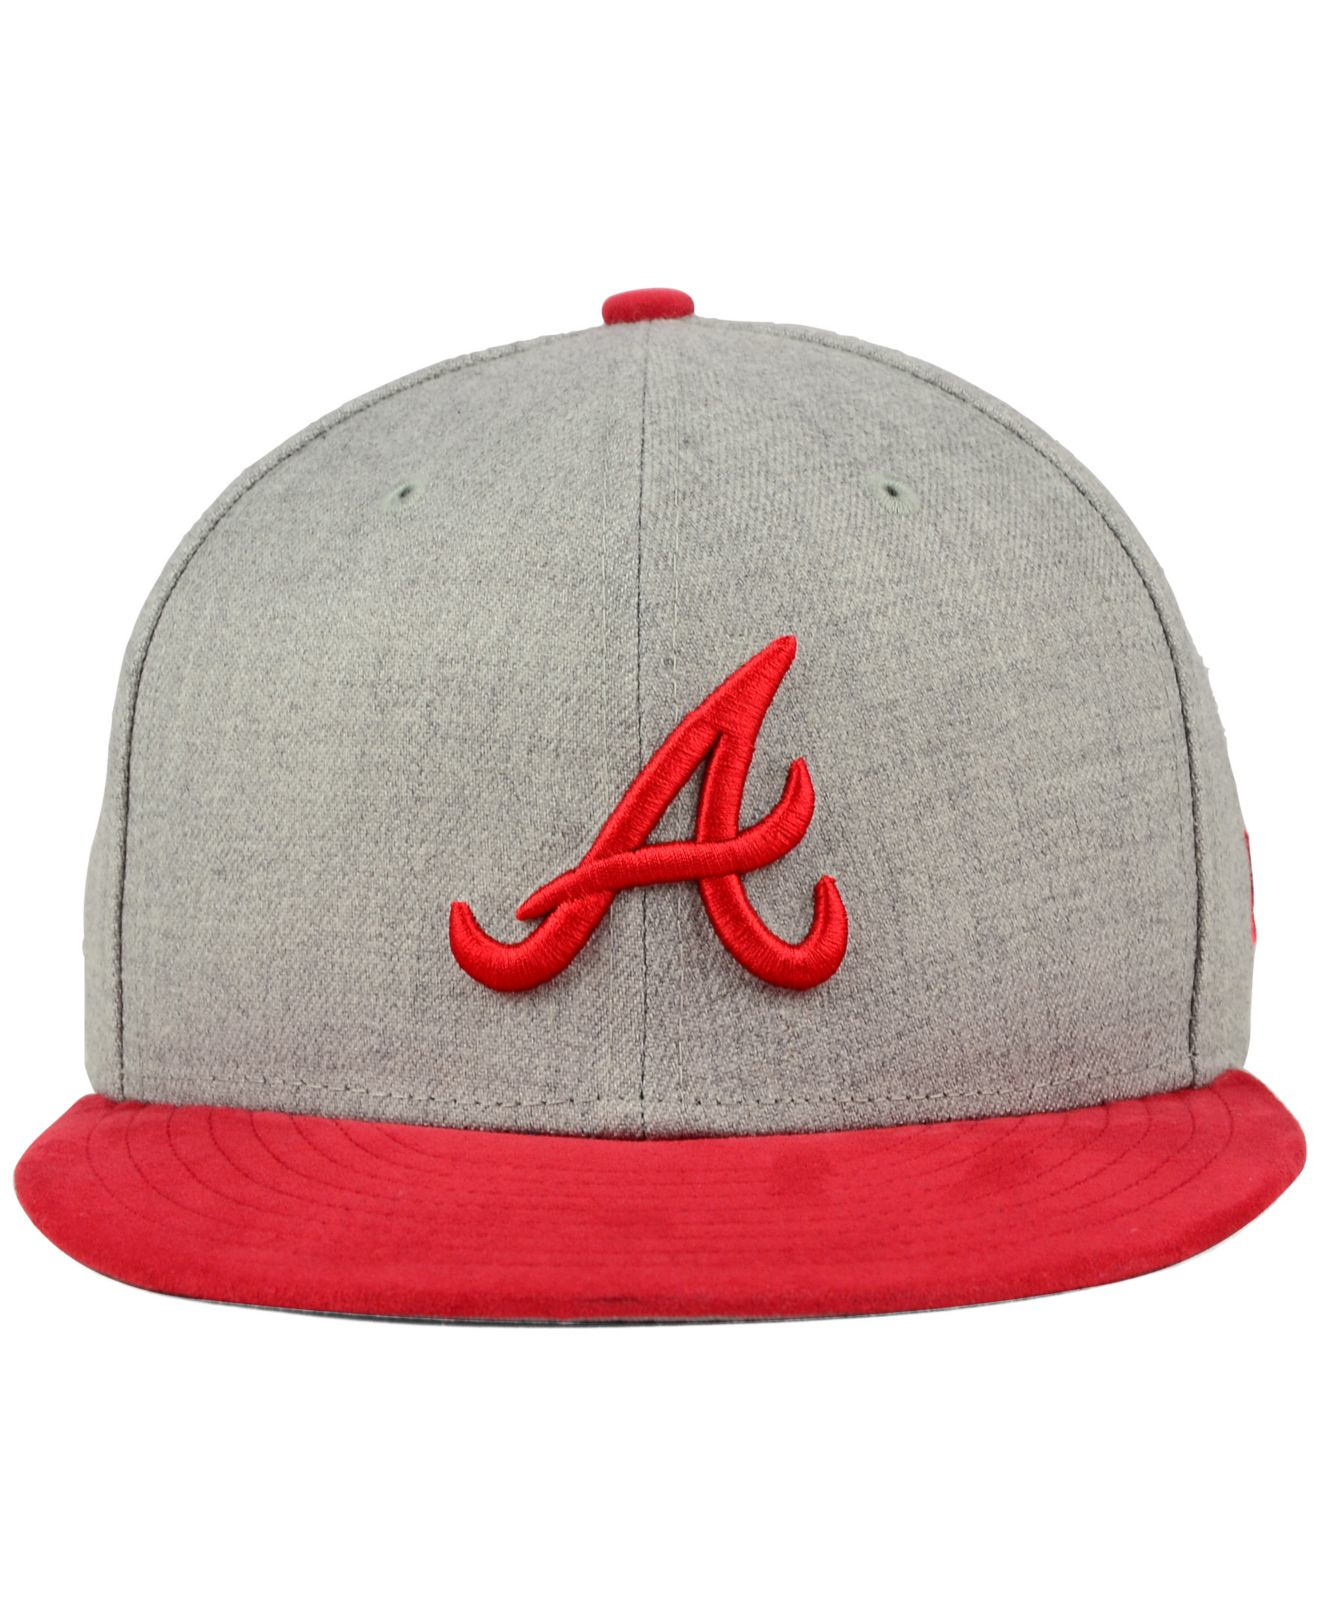 ed1c3463 ... promo code for lyst ktz atlanta braves heather on faux suede 9fifty  snapback cap d9eb4 d3693